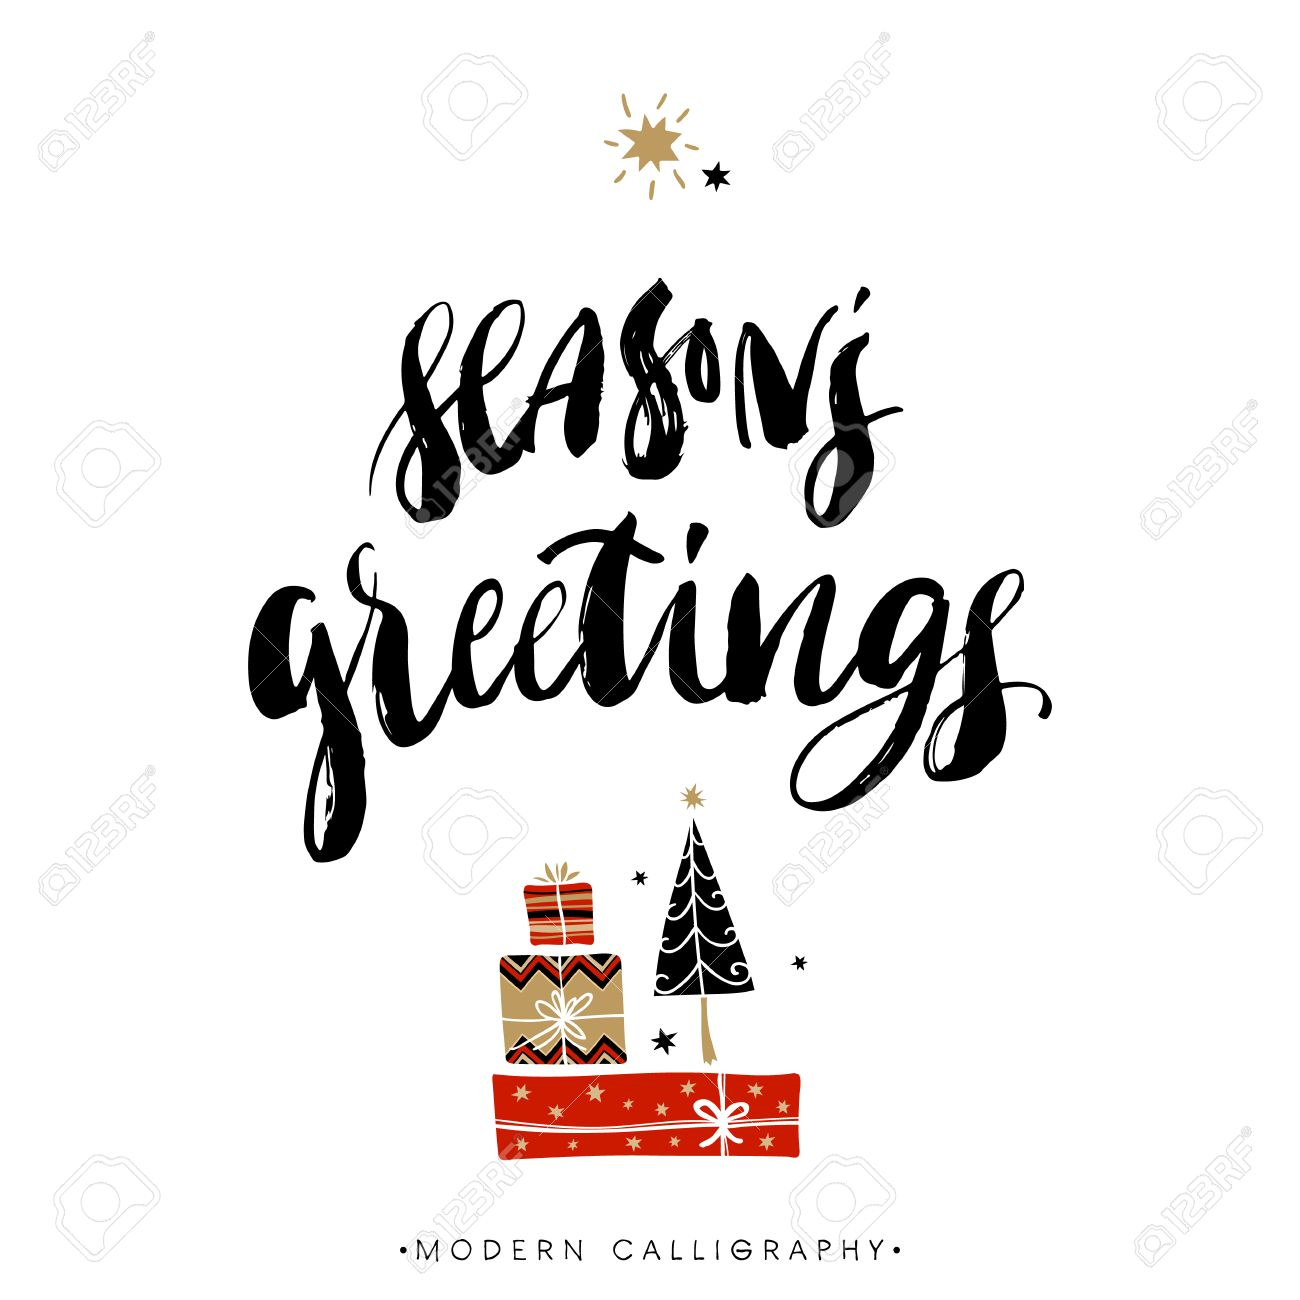 Seasons greetings christmas calligraphy handwritten modern seasons greetings christmas calligraphy handwritten modern brush lettering hand drawn design elements kristyandbryce Choice Image